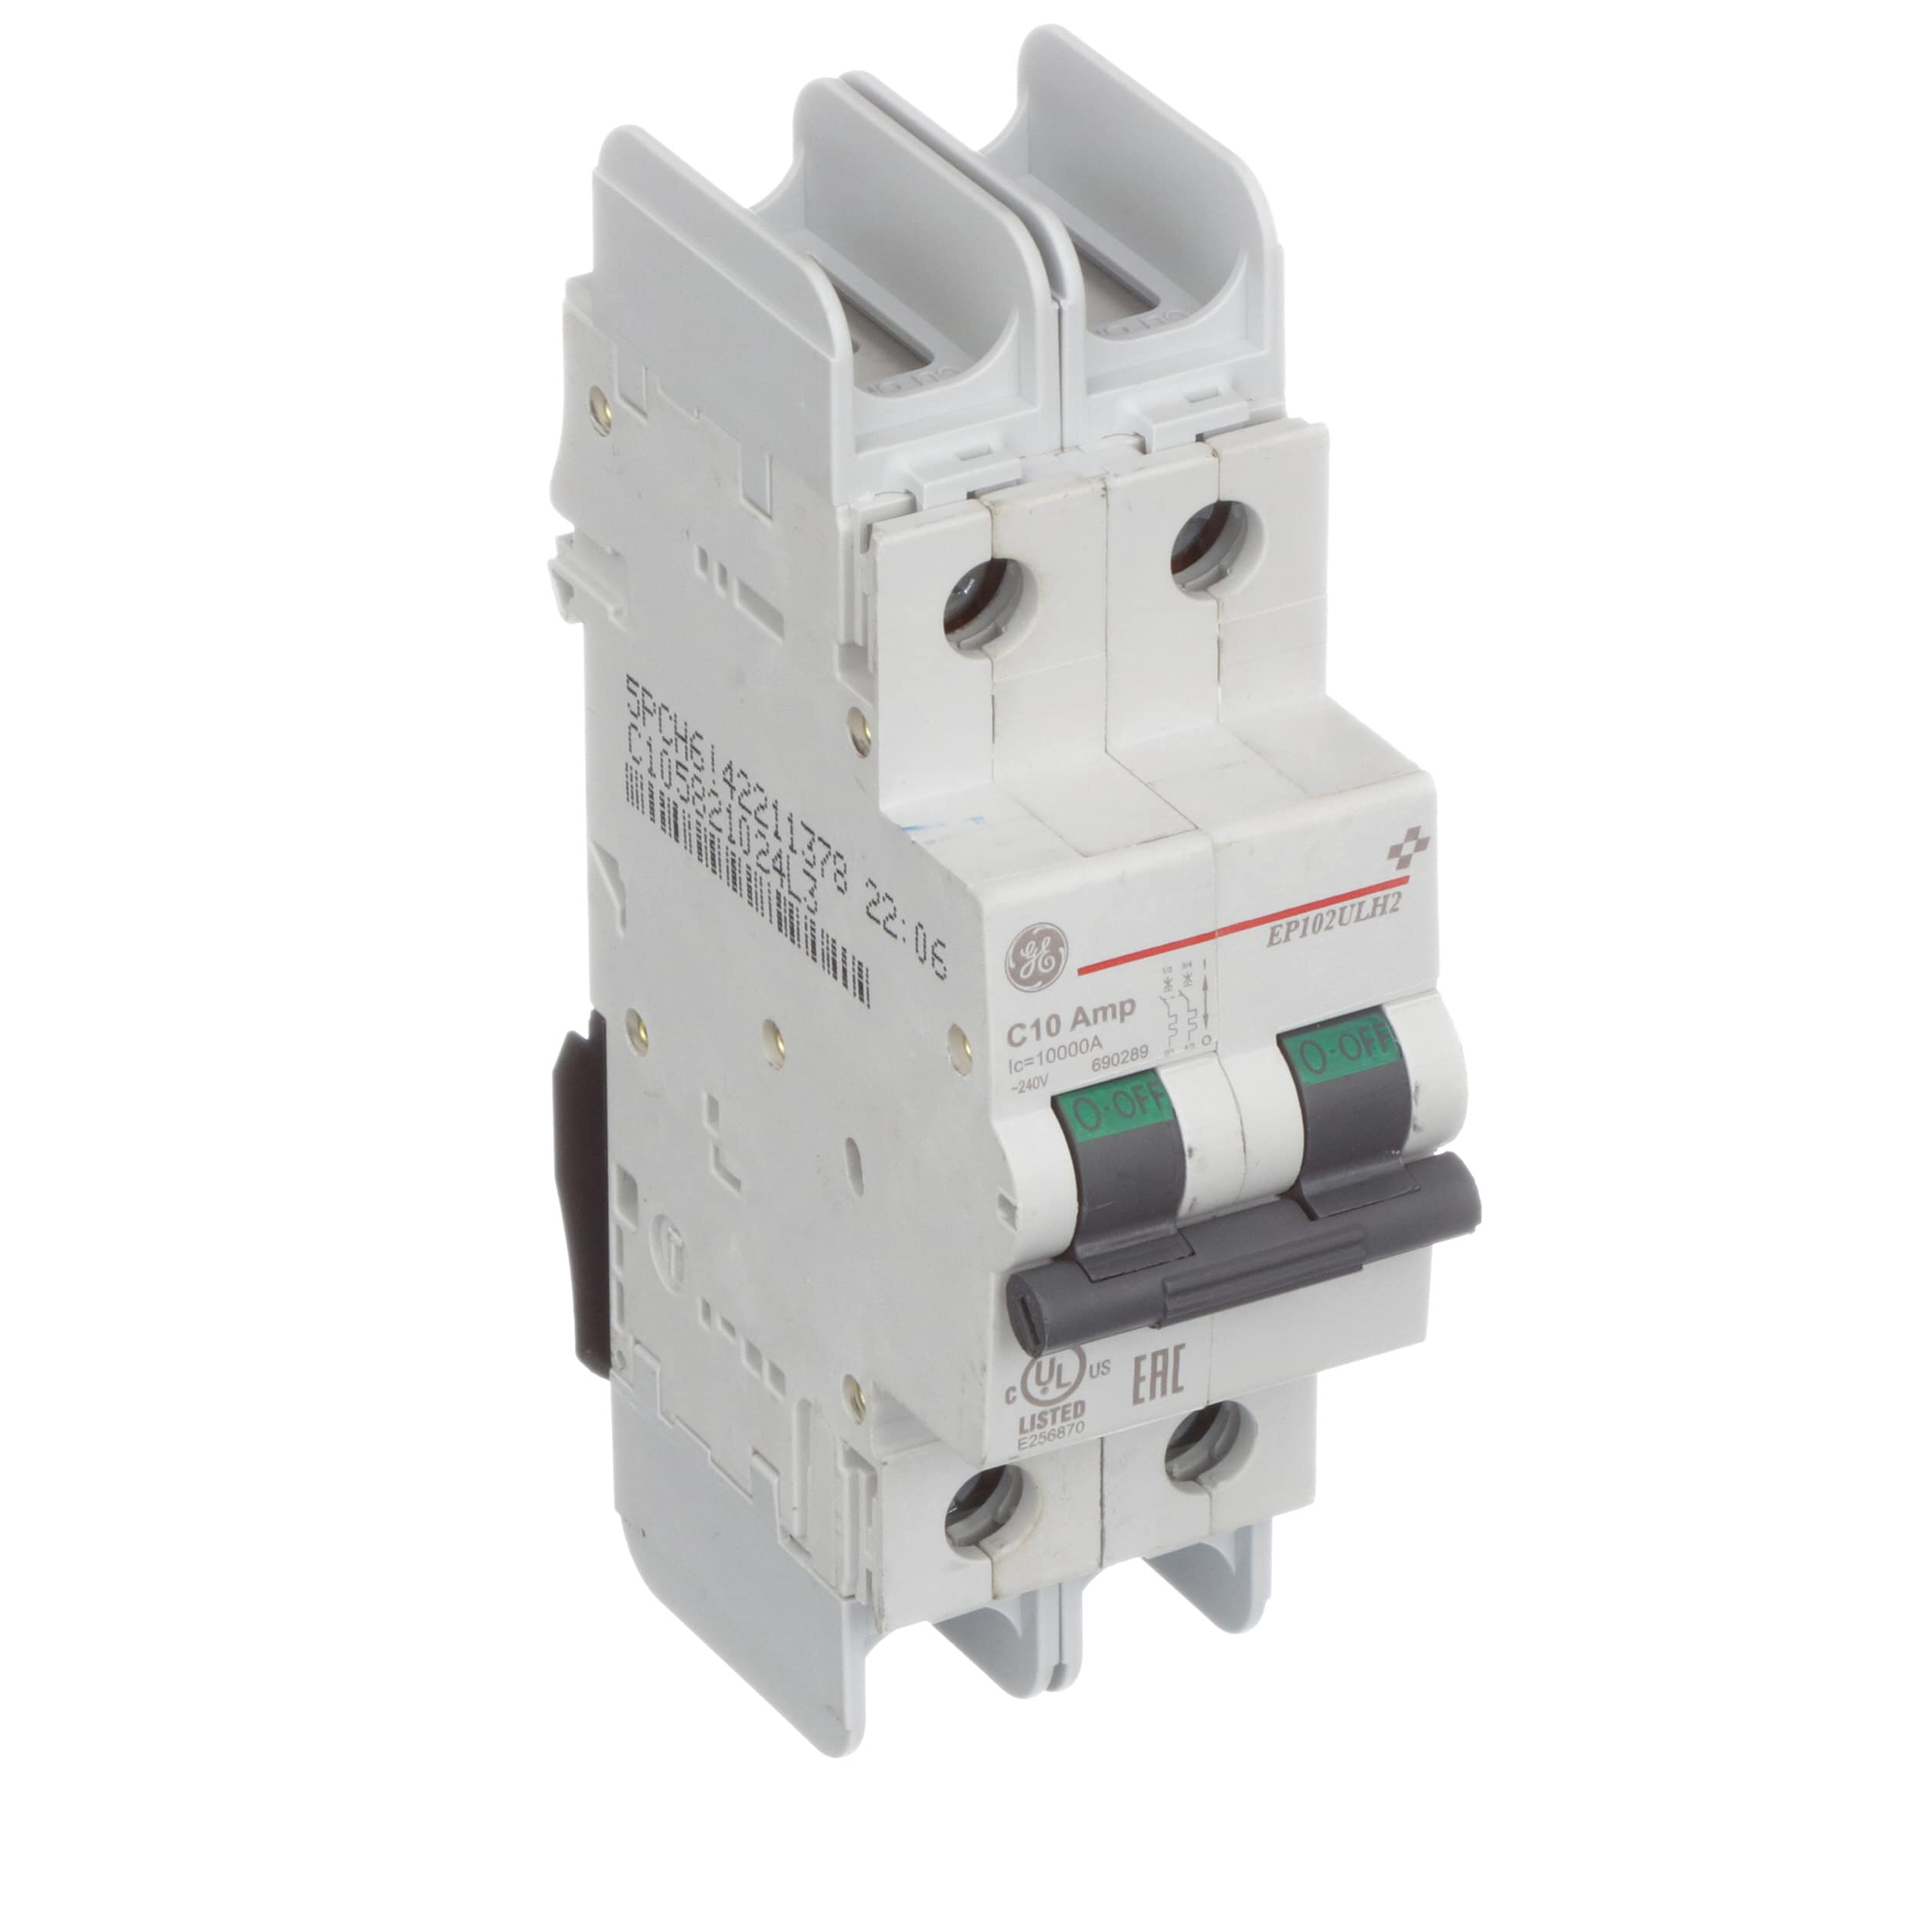 Ge Industrial Solutions Ep102ulh2c10 Miniature Circuit Breaker Off Module View Ep100 Ulh 2 Poles 10 A 480y 277 Vac Allied Electronics Automation